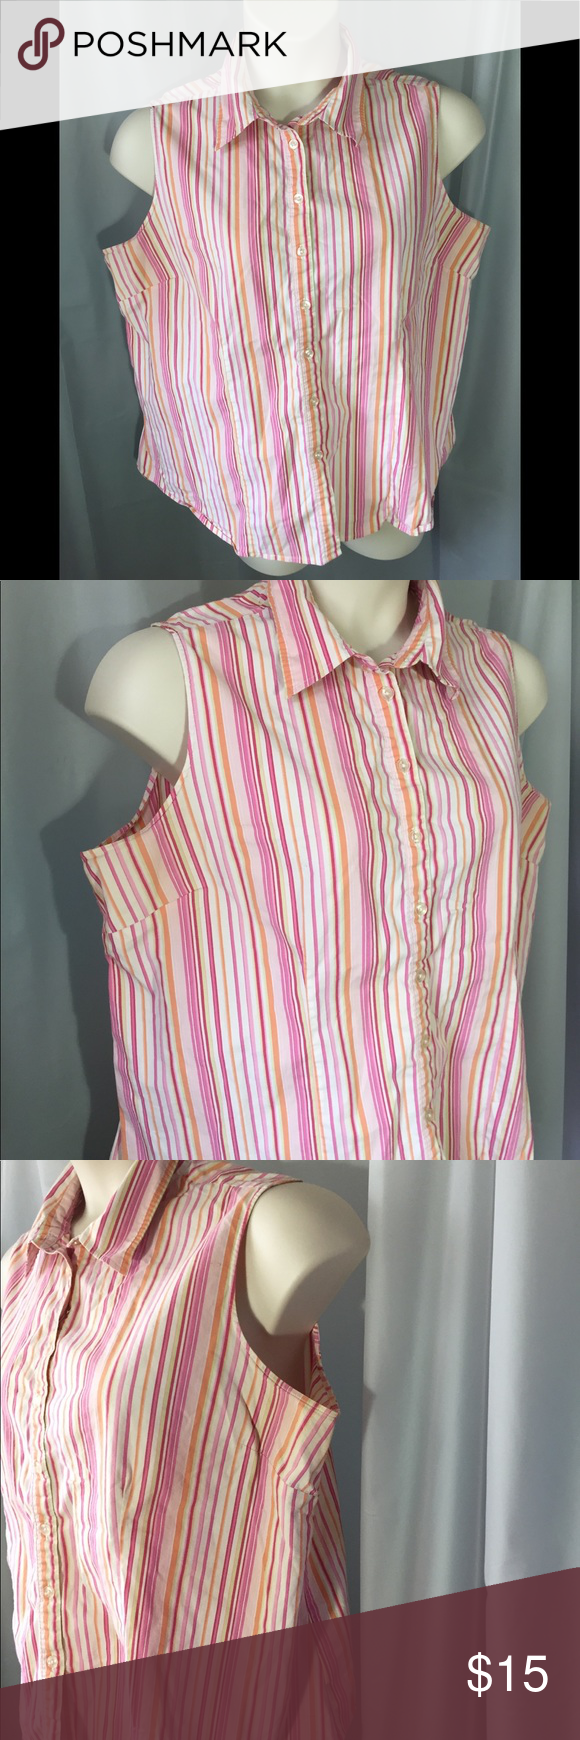 55b21710997e0 New Addition Maternity Blouse It's a nice colorful and buttons down the  front and the sleeveless to stay cool New Addition Maternity Tops Button  Down Shirts